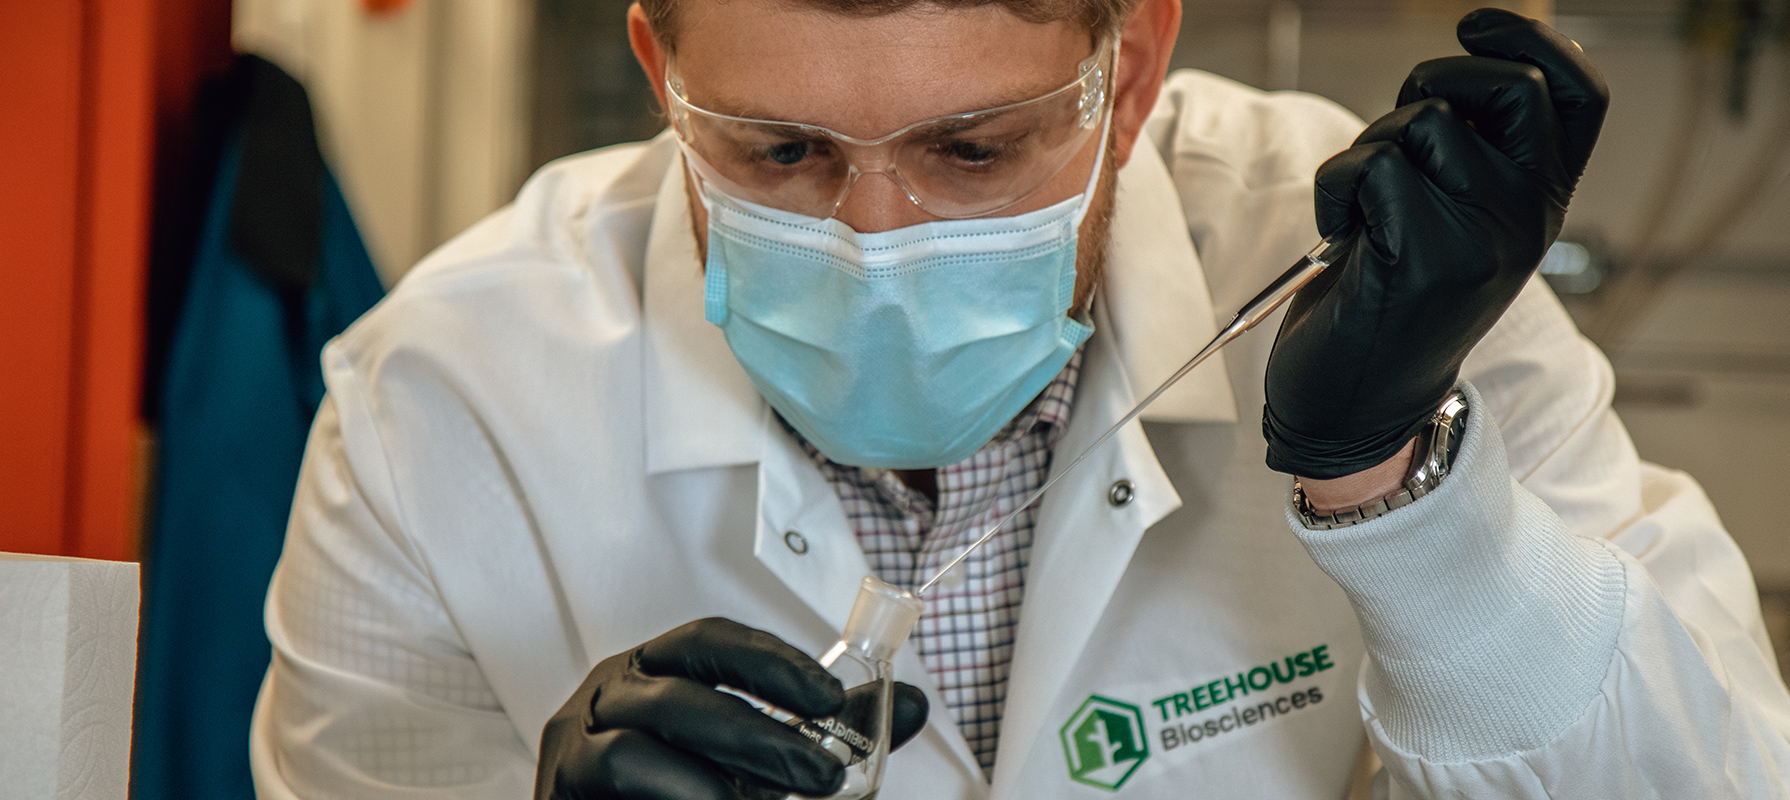 Next Frontier Brands' Subsidiary TreeHouse Biosciences™ Announces the Launch of its THC Remediation Services Business  Based on Patented Technology